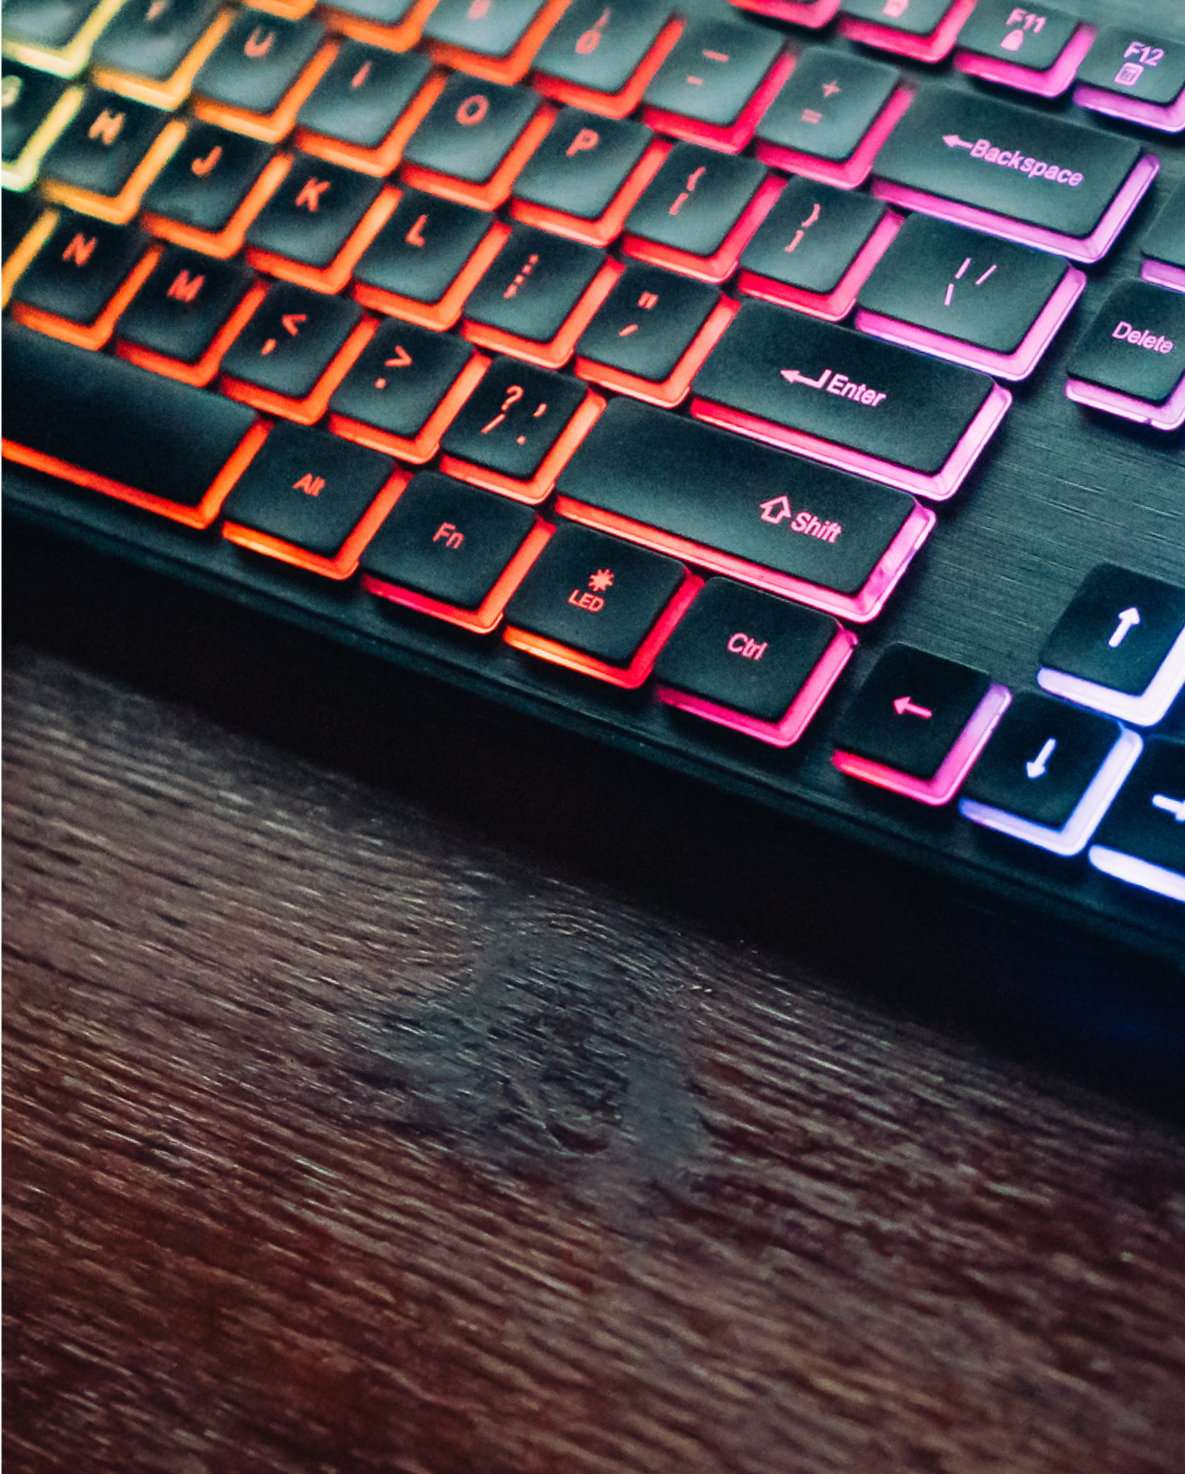 Keyboard that lights up with rainbow colors